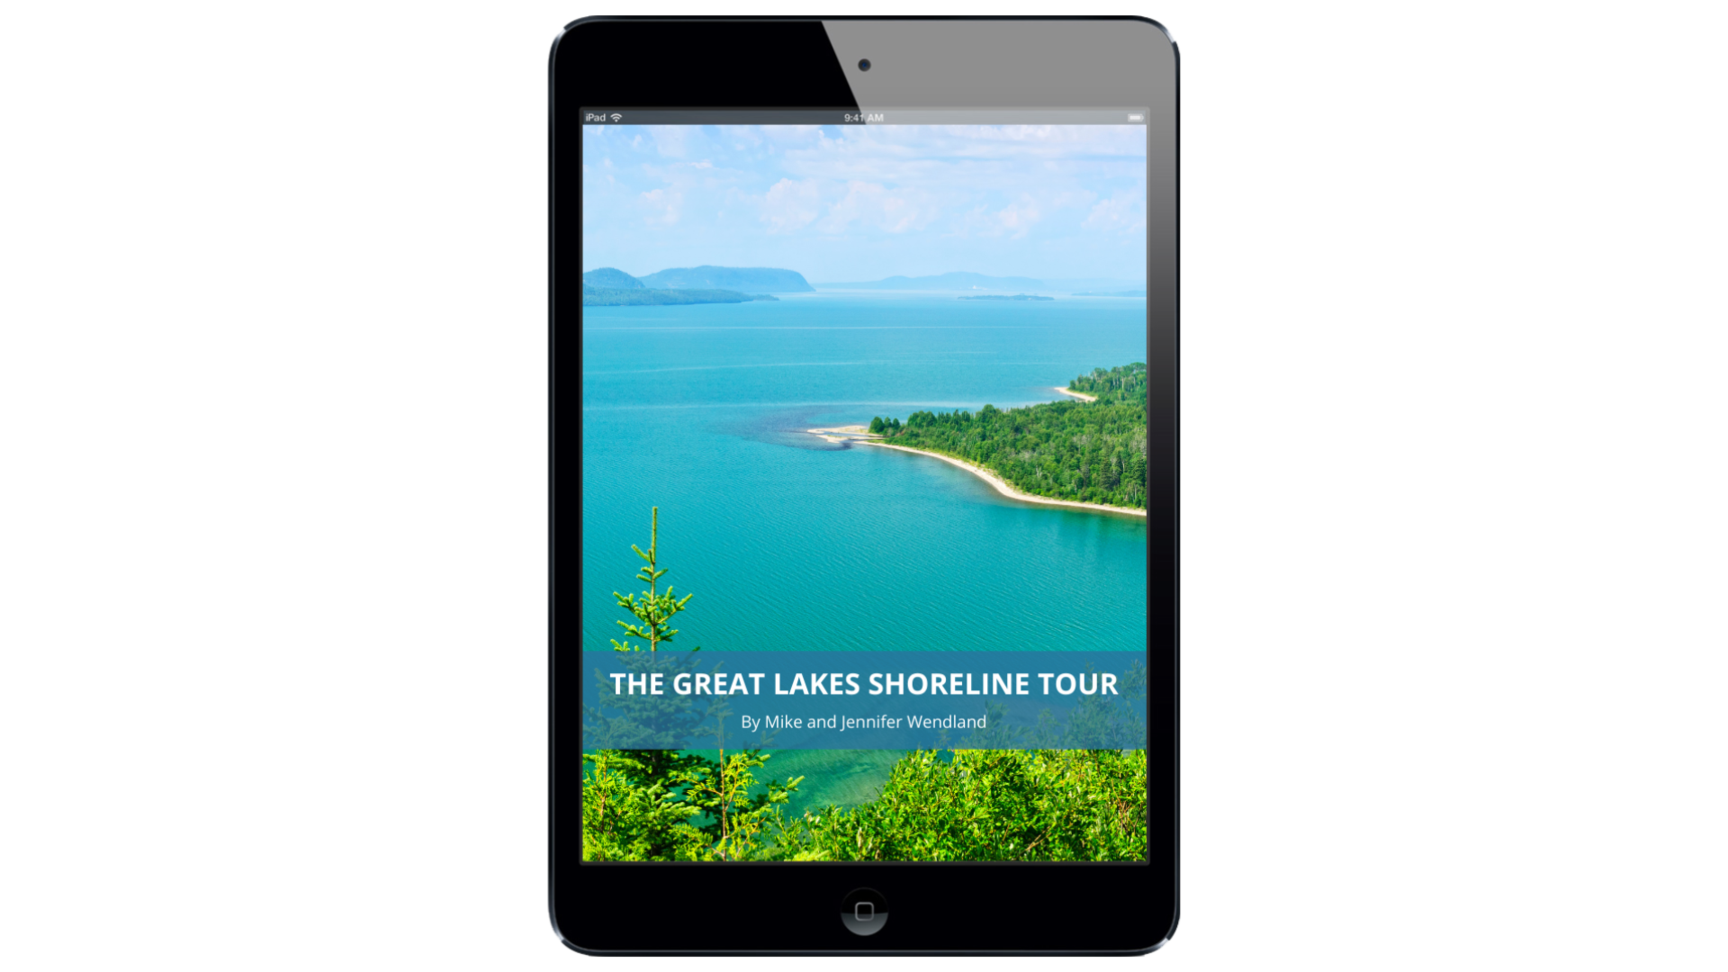 the Great Lakes Shoreline Tour cover image